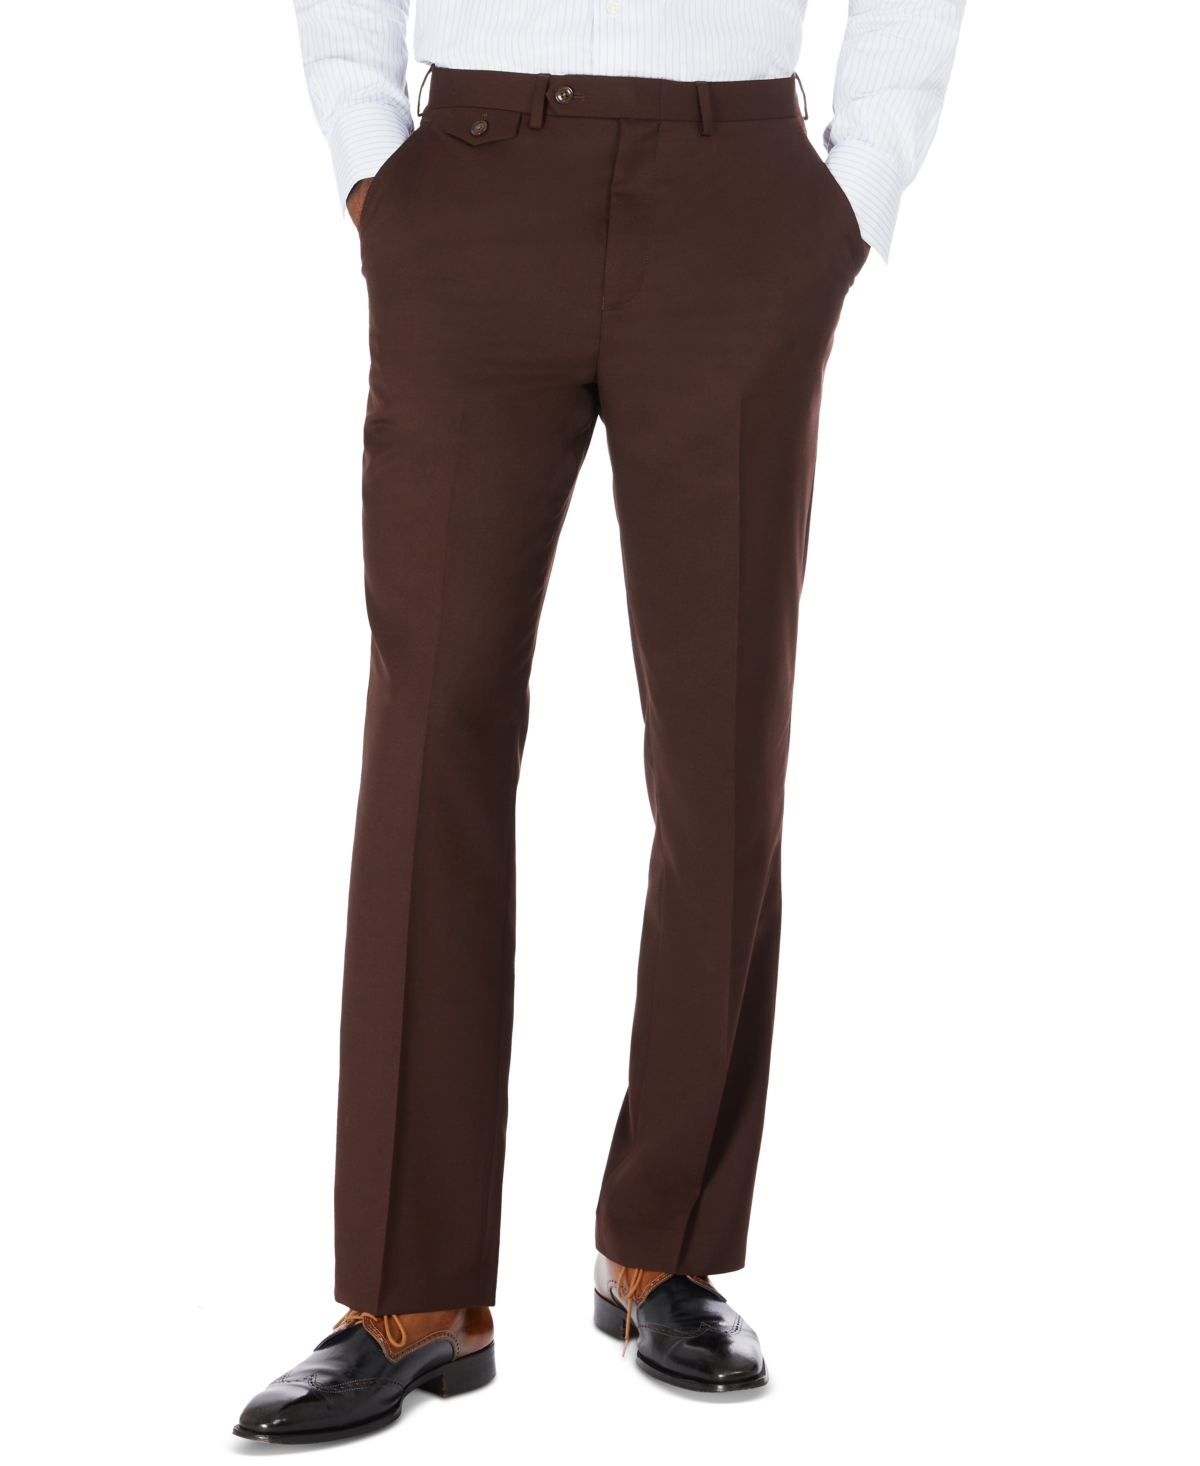 1960s Men's Clothing Tayion Collection Mens Classic-Fit Solid Brown Suit Separate Pants $175.00 AT vintagedancer.com